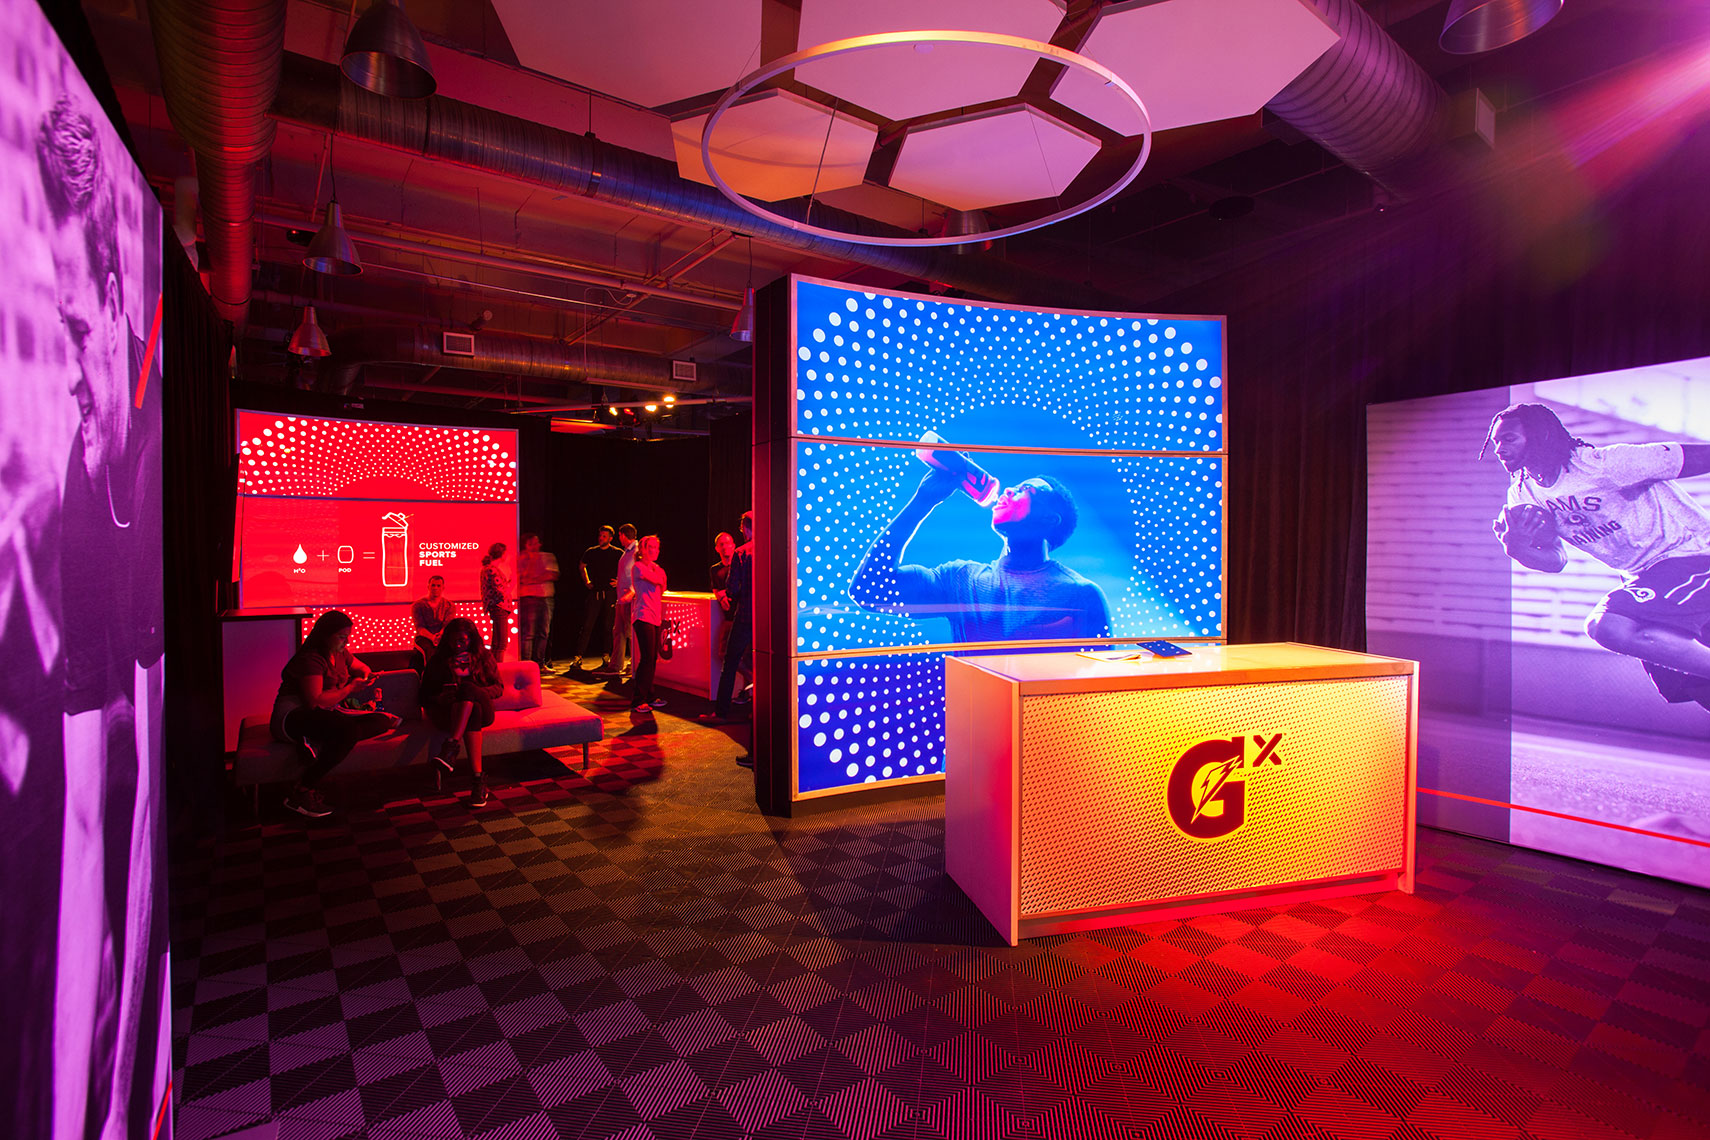 interior design Photo of a Gatorade Gym by a Commercial Advertising photographer in Houston, Texas